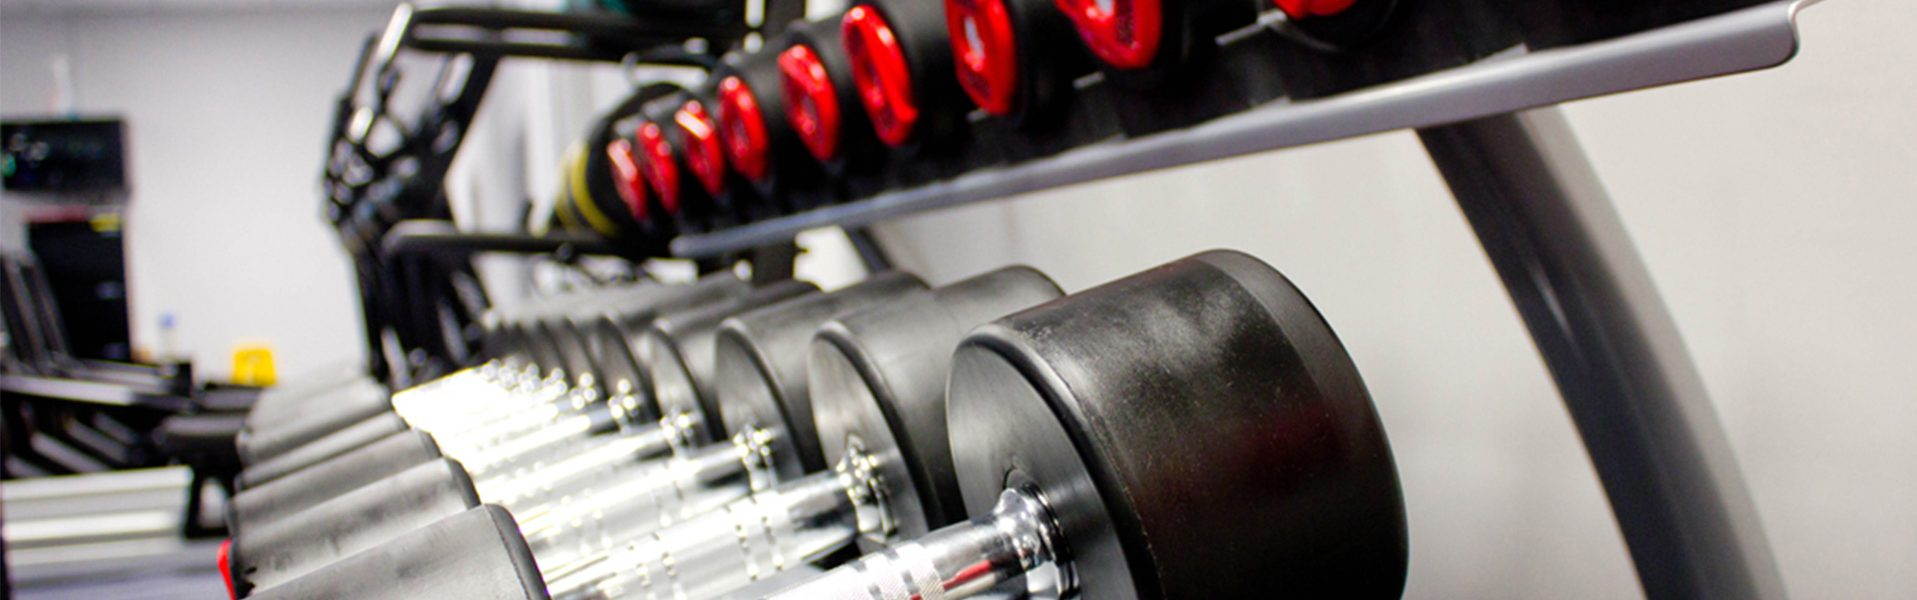 Visit us for   Fitness & Wellbeing    Find out more